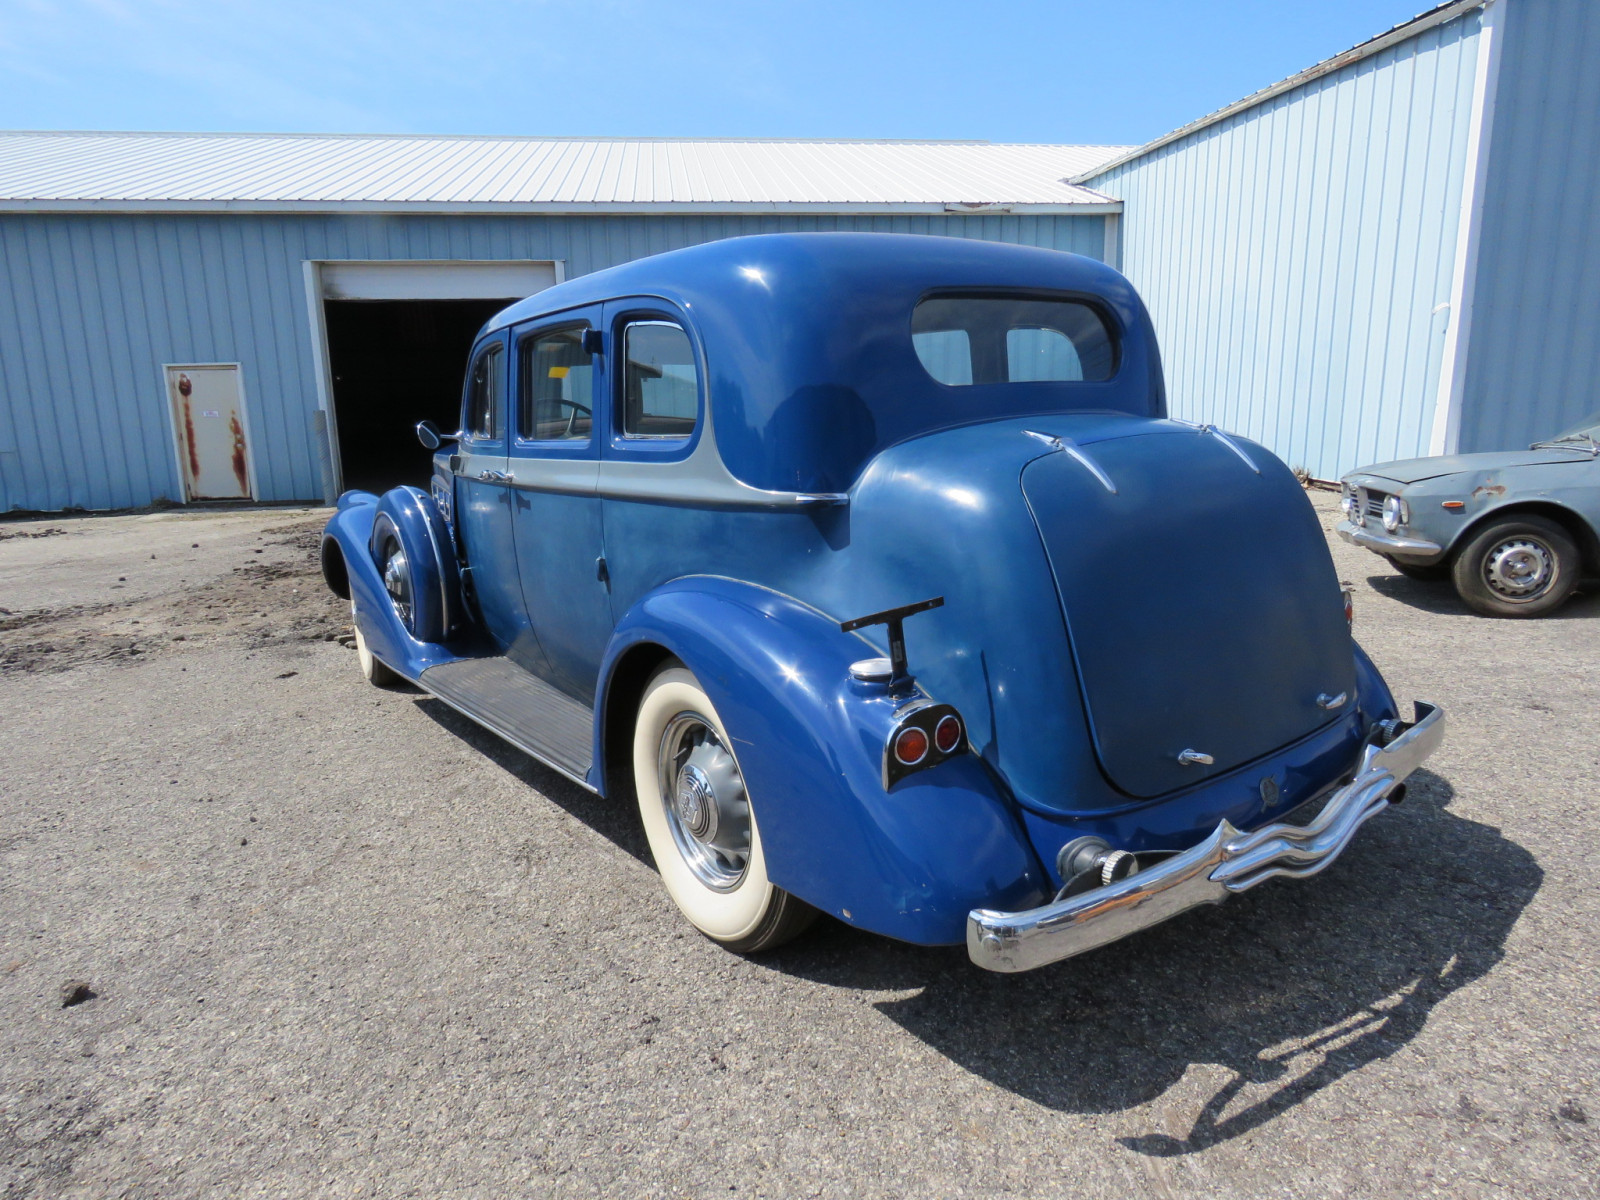 1936 Pierce Arrow V12  Series 1602 5 Passenger Sedan - Image 7